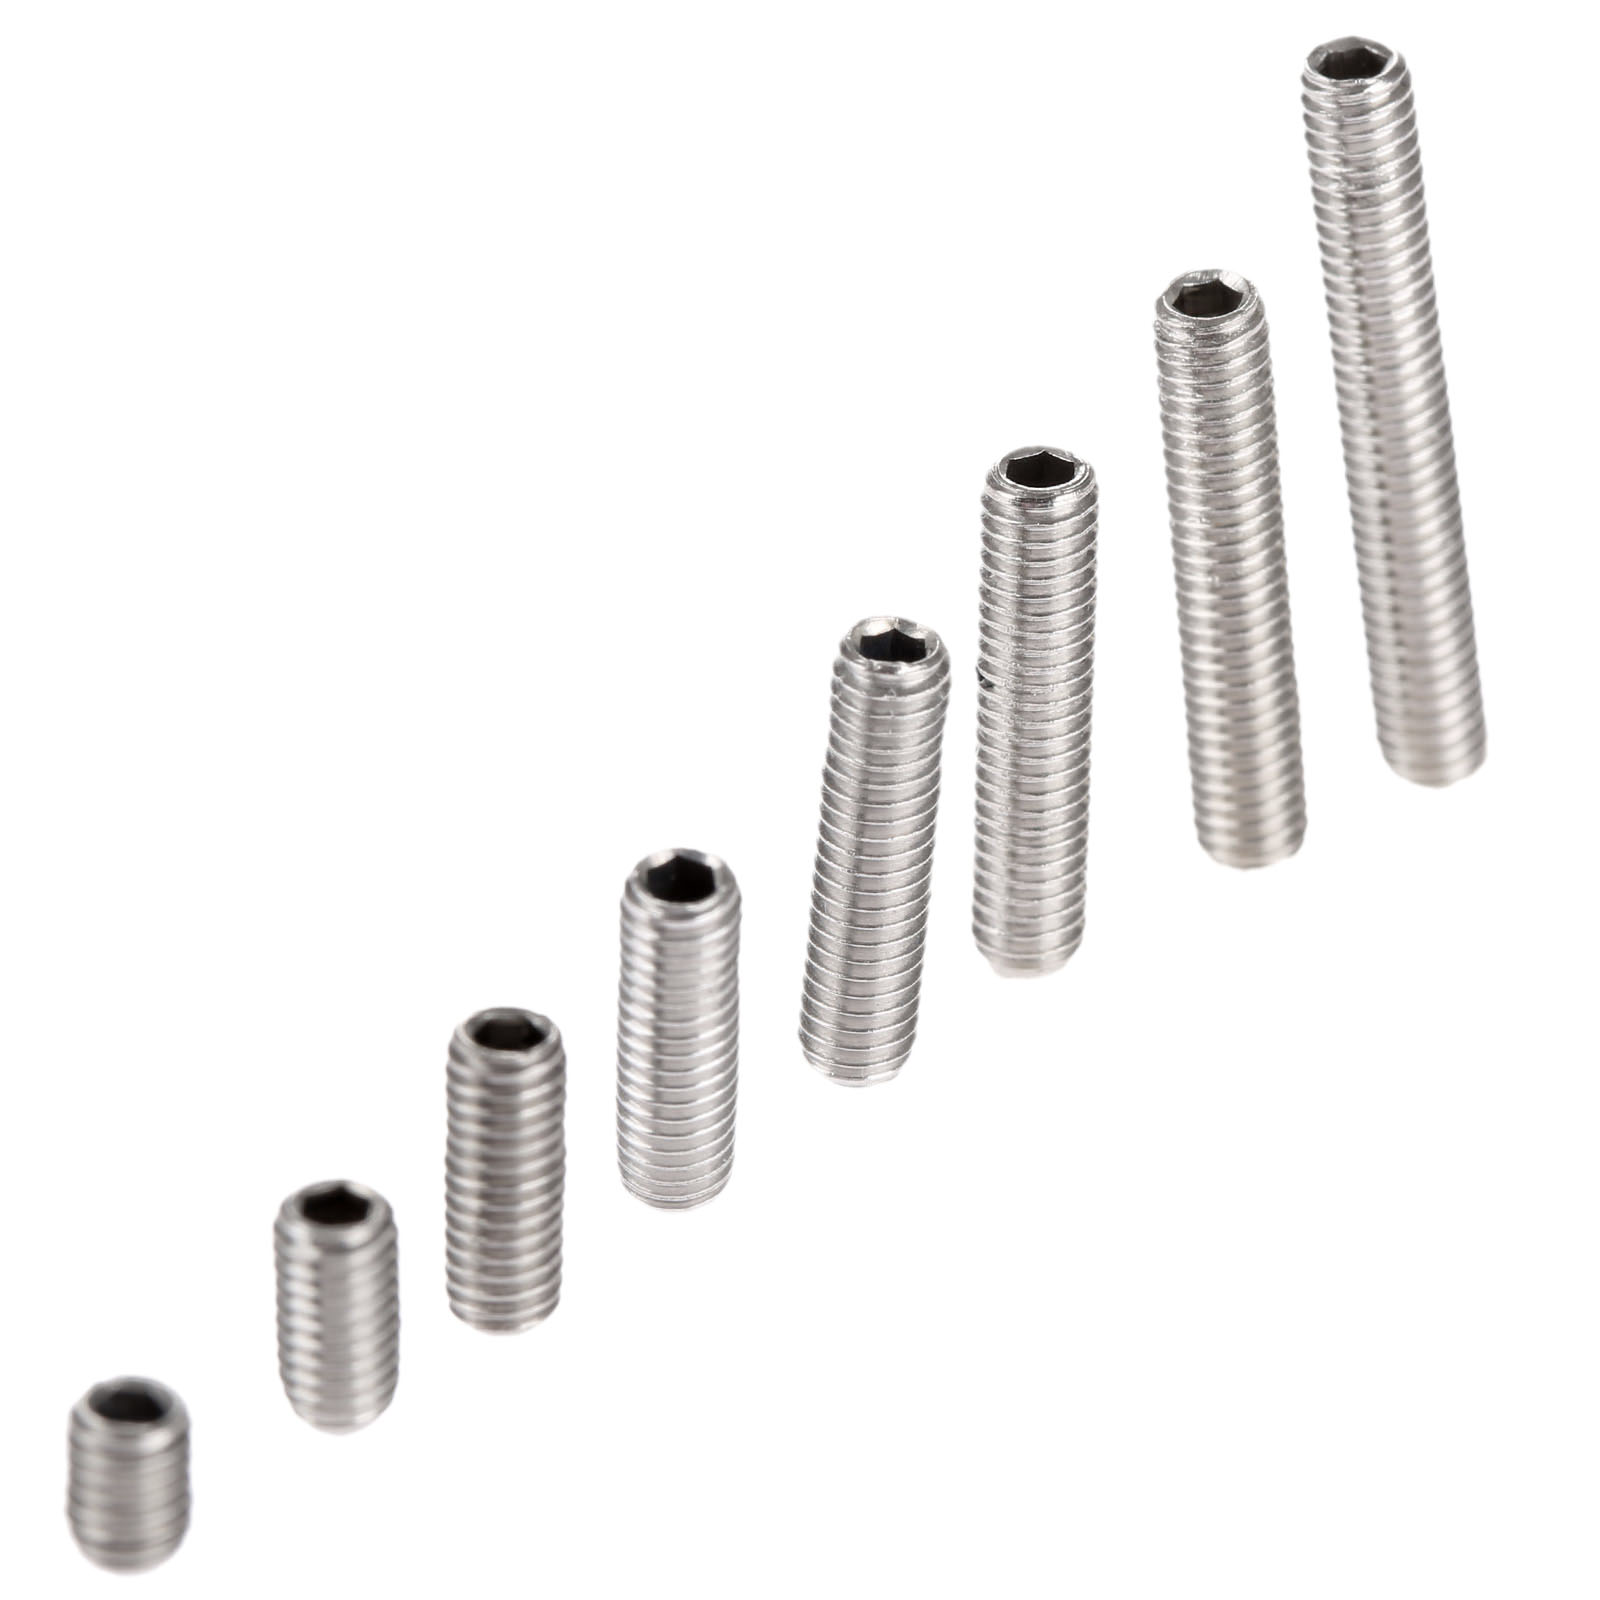 50Pcs M3 Stainless Steel Allen Head Hex Socket Grub Screw Bolts Nuts Fasteners M3 Screws Hardware M3 x4/6/8/10/12/14/16/20mm 50pcs m3 6 8 10 12 colourful aluminum hex socket cap head machine screw